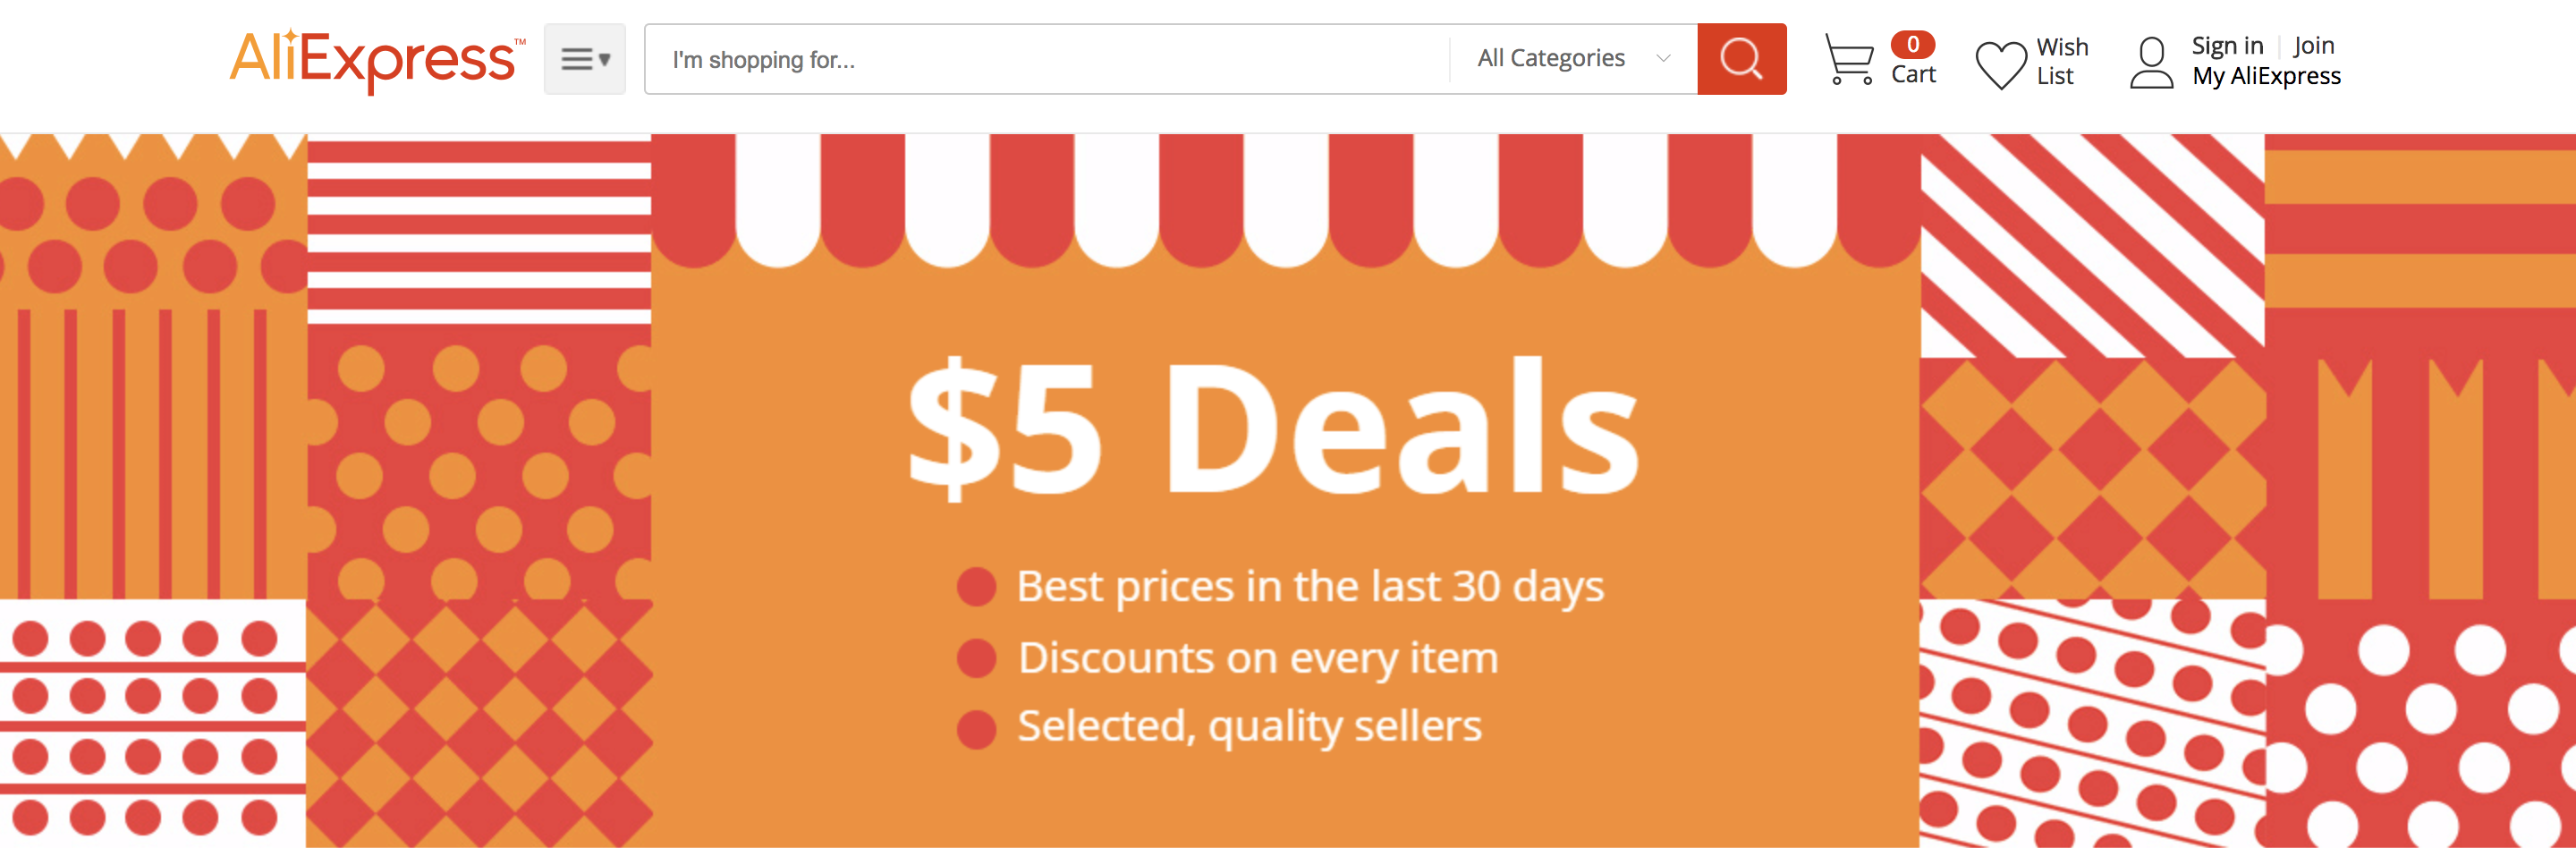 AliExpress $5 Deals